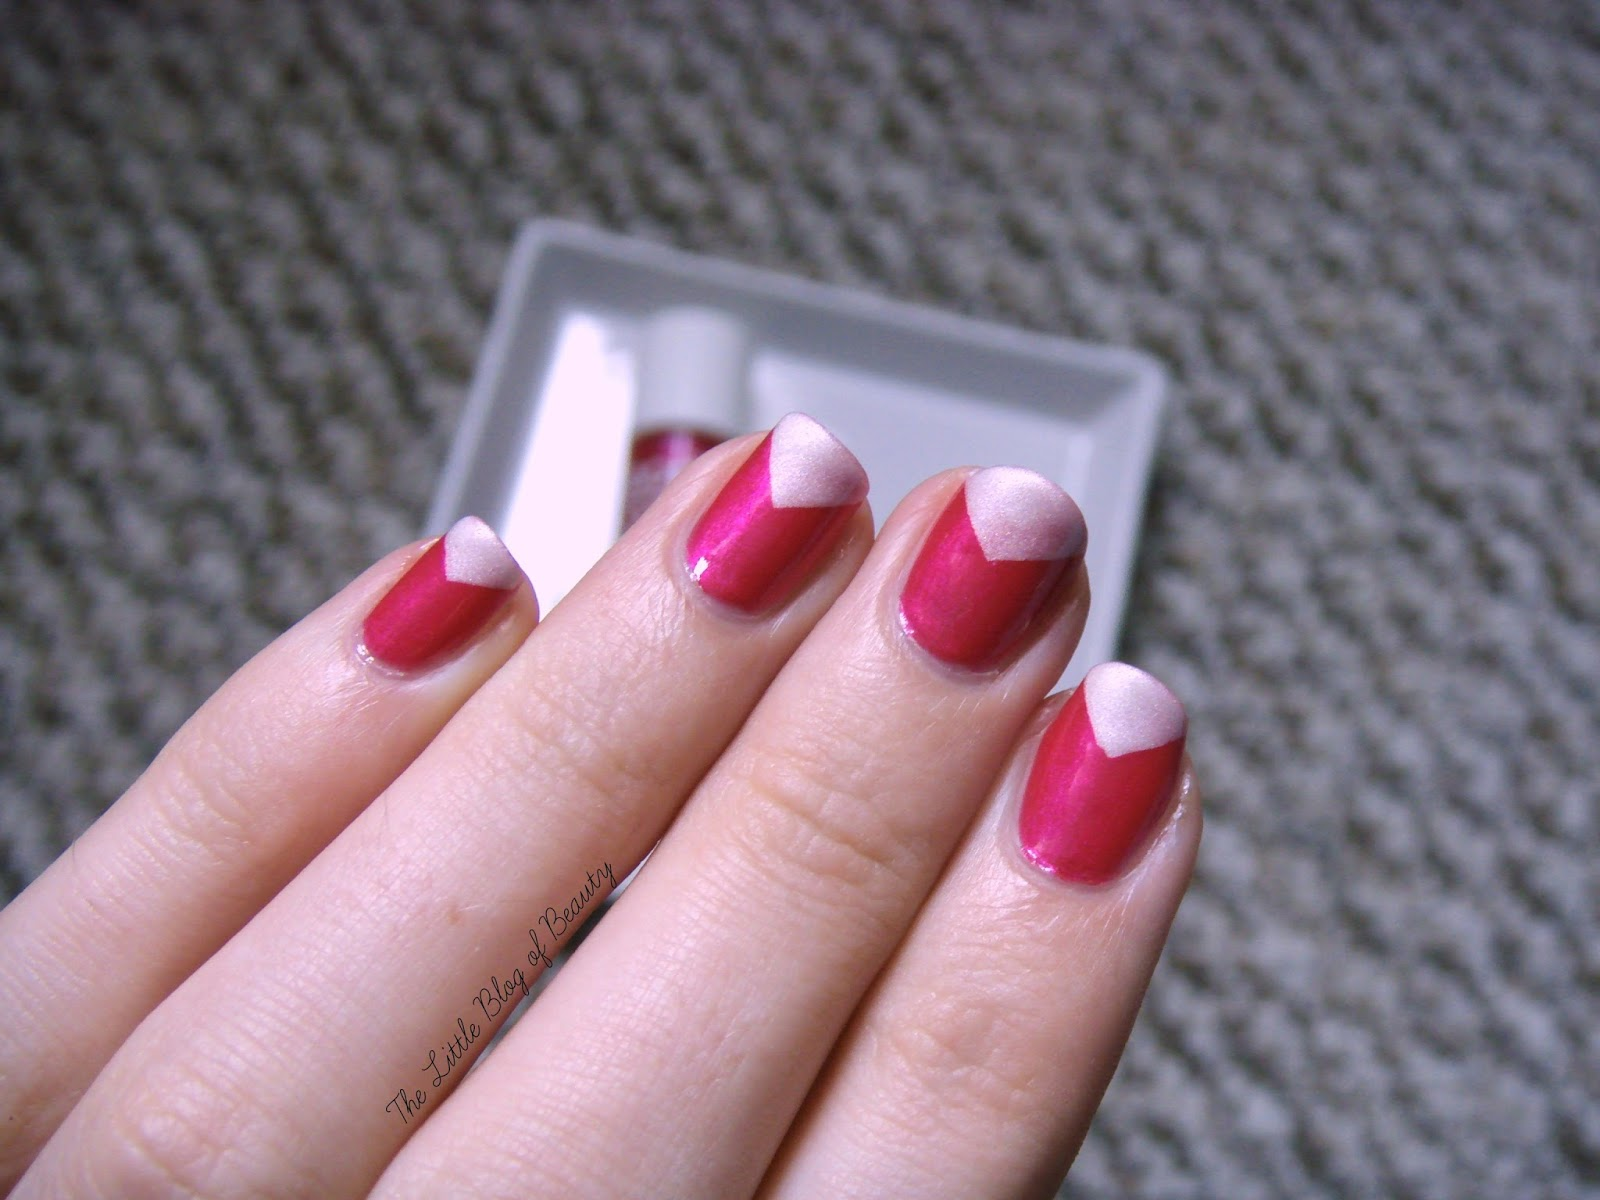 Nail art - Triangle tips